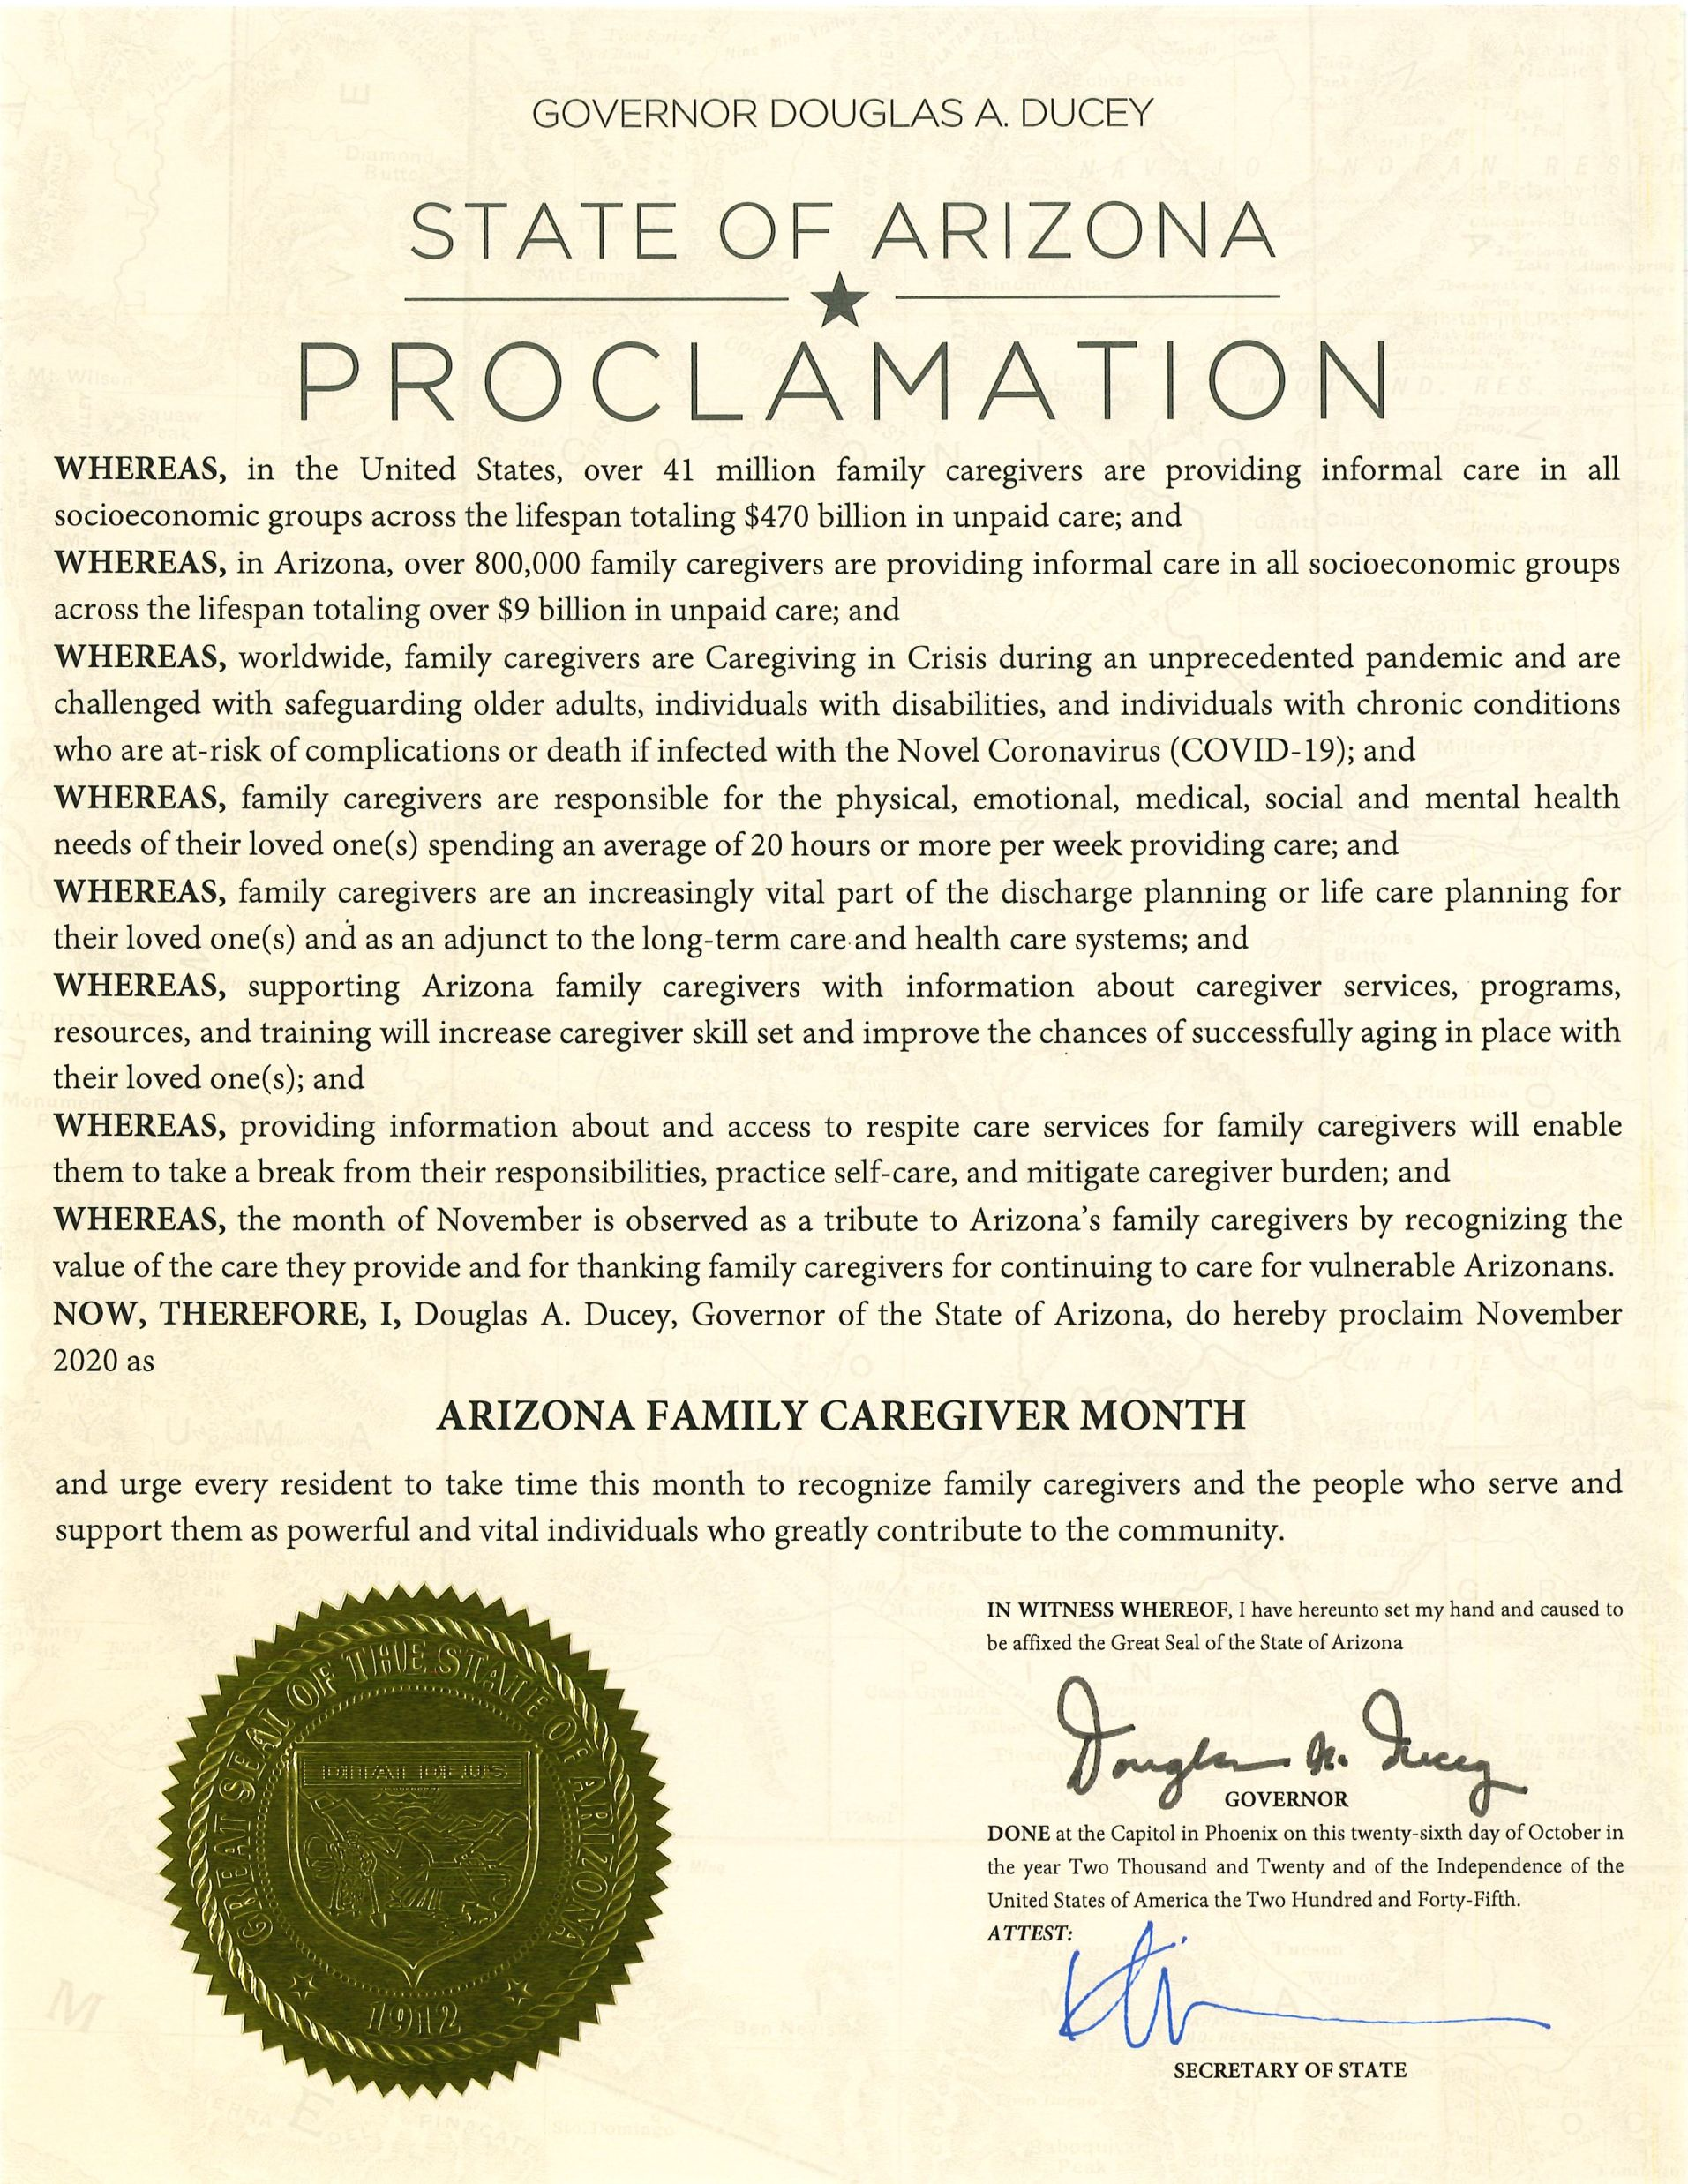 AZ Family Caregiver Month 2020 Proclamation